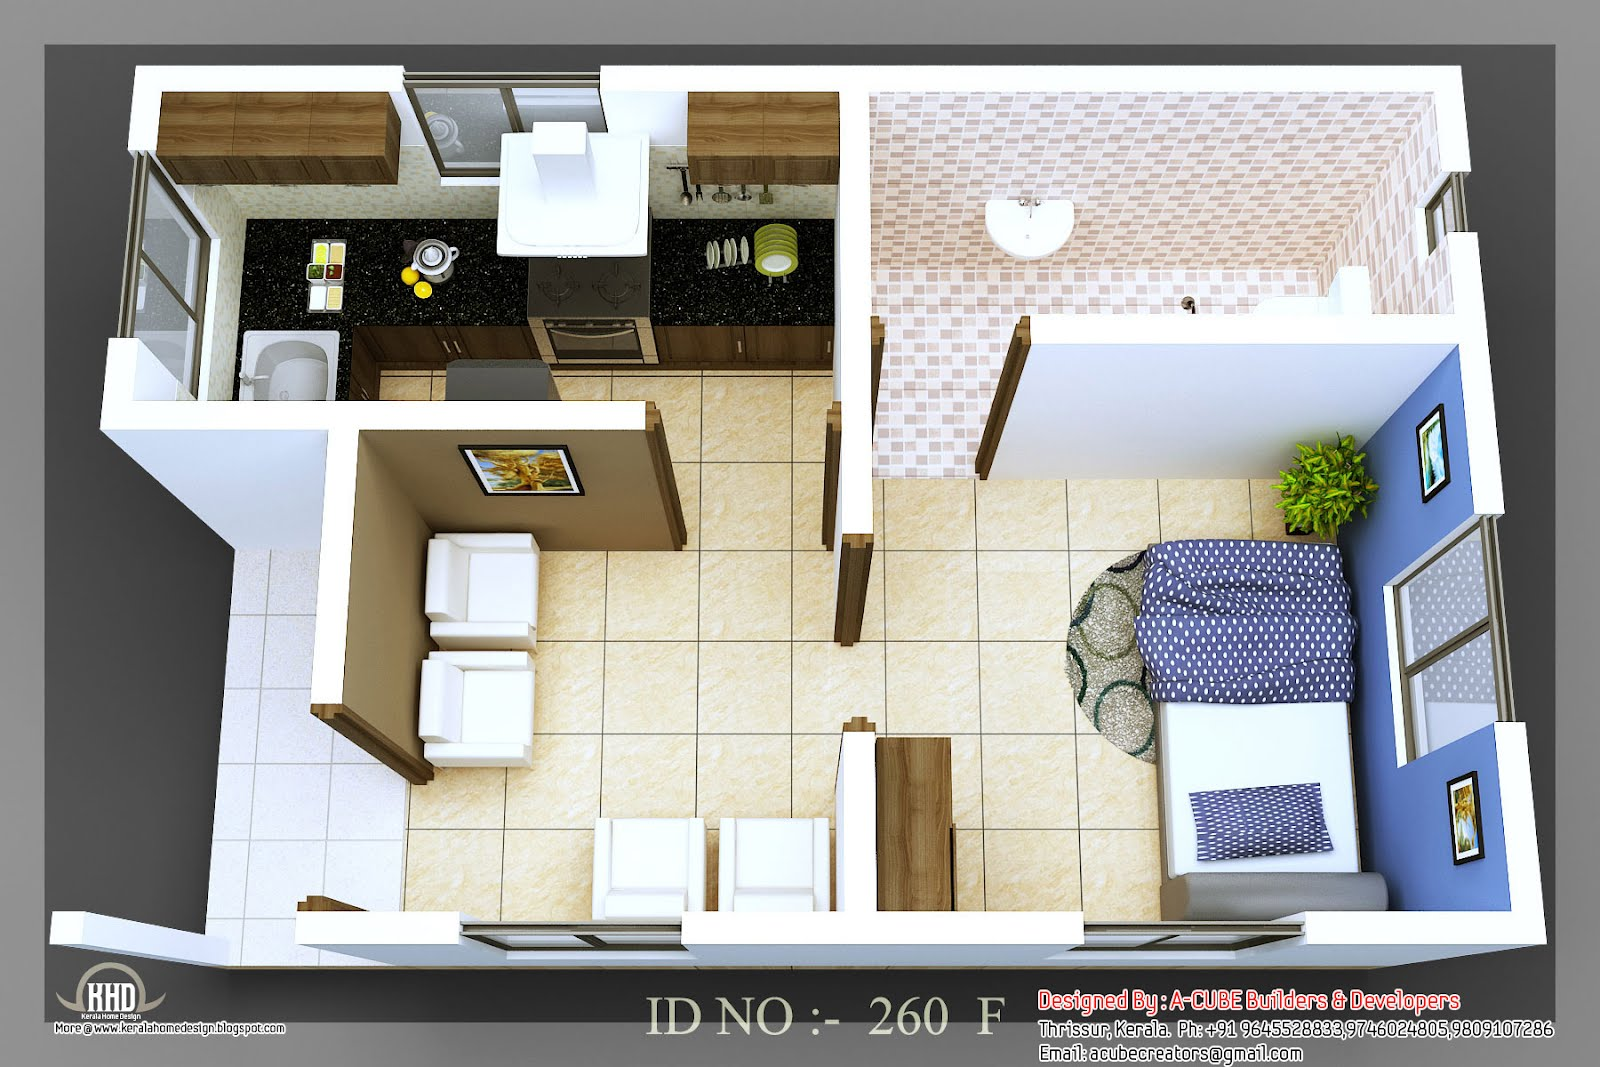 3d isometric views of small house plans kerala home for Create 3d home design online